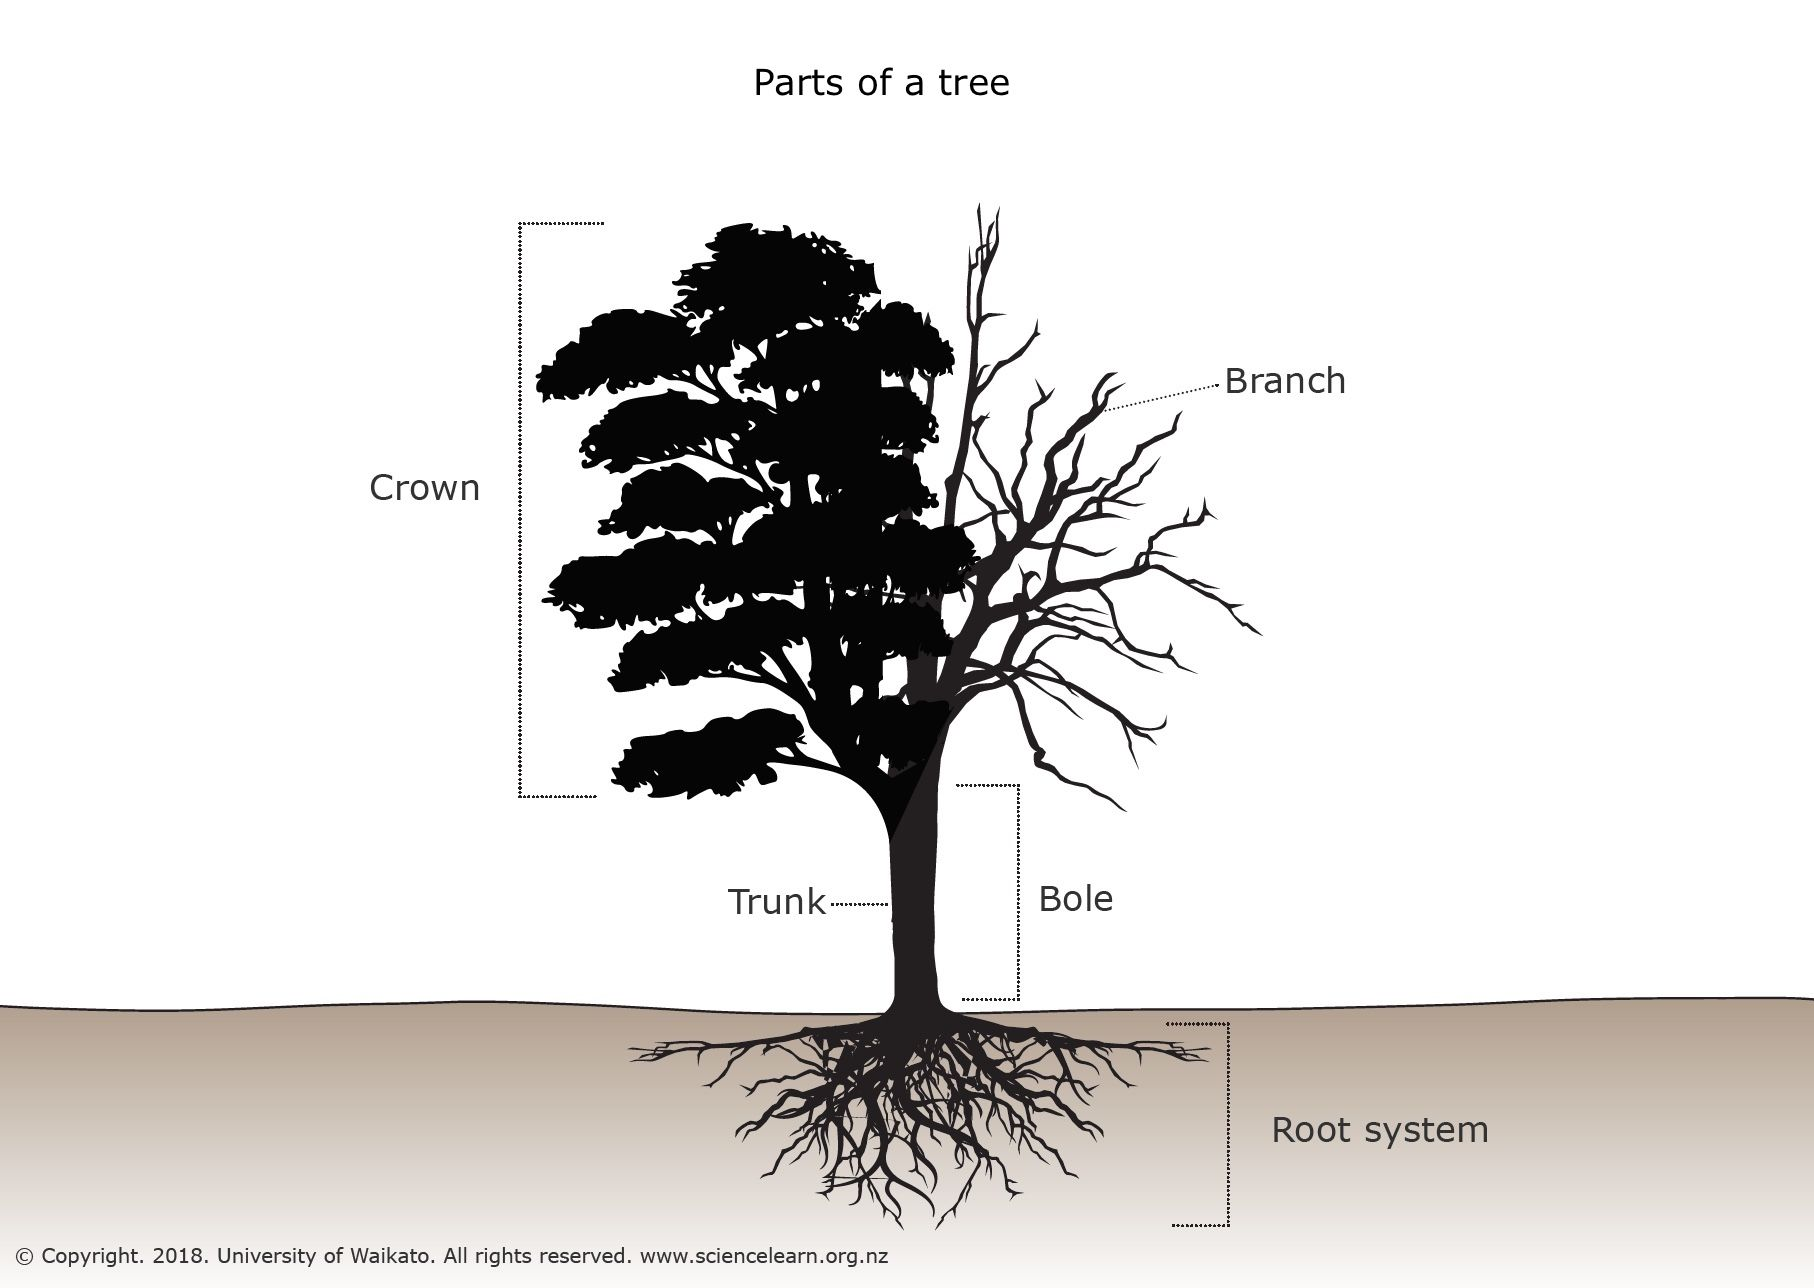 hight resolution of parts of a tree diagram this diagram labels the main parts of a tree the particular shapes and sizes of the parts may be in different proportions in